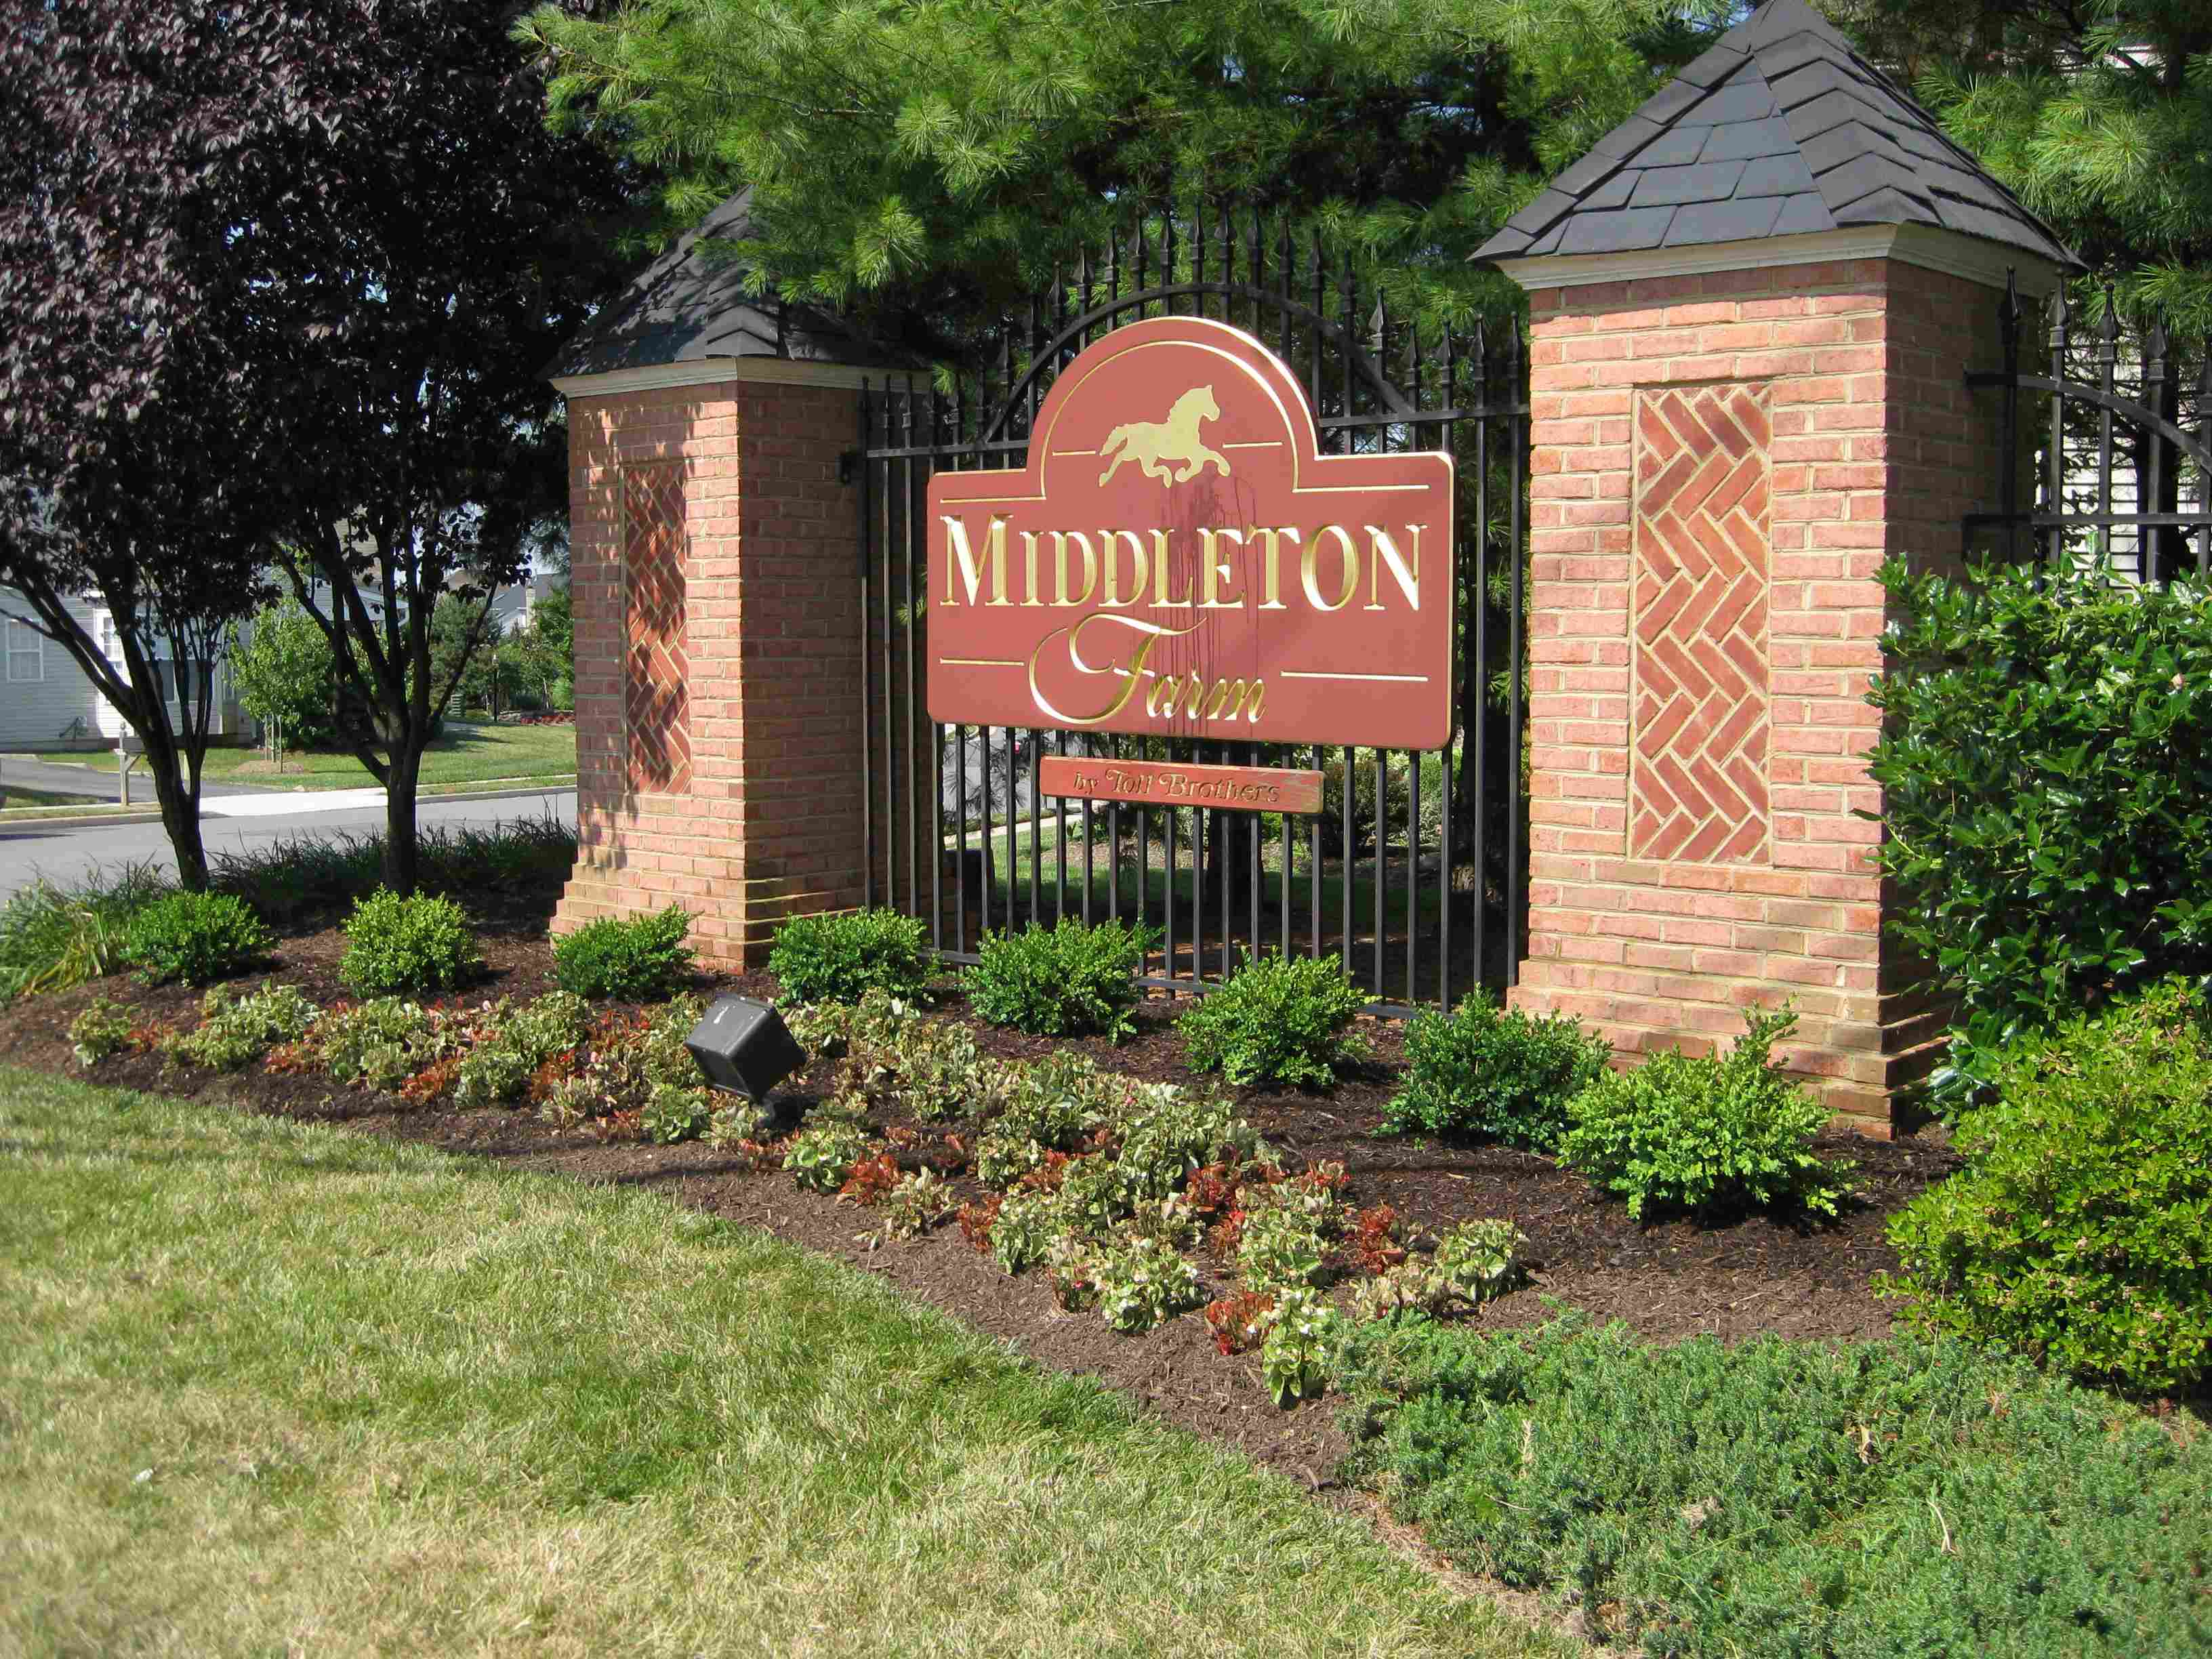 Middleton farm hoa home page for Middleton home